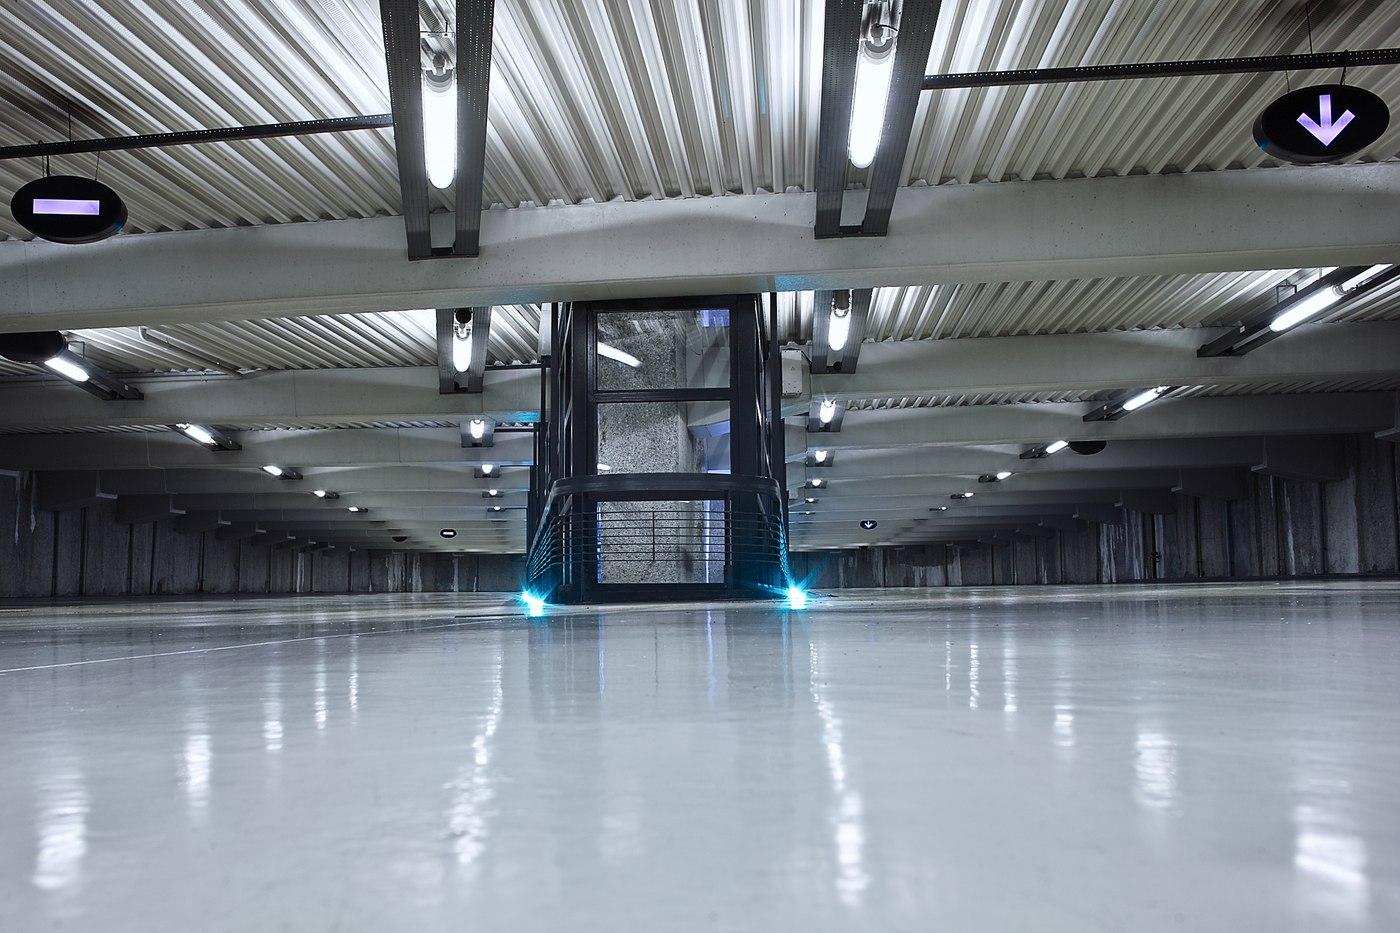 A Property Owner's Guide to Commercial Concrete Floor Coating